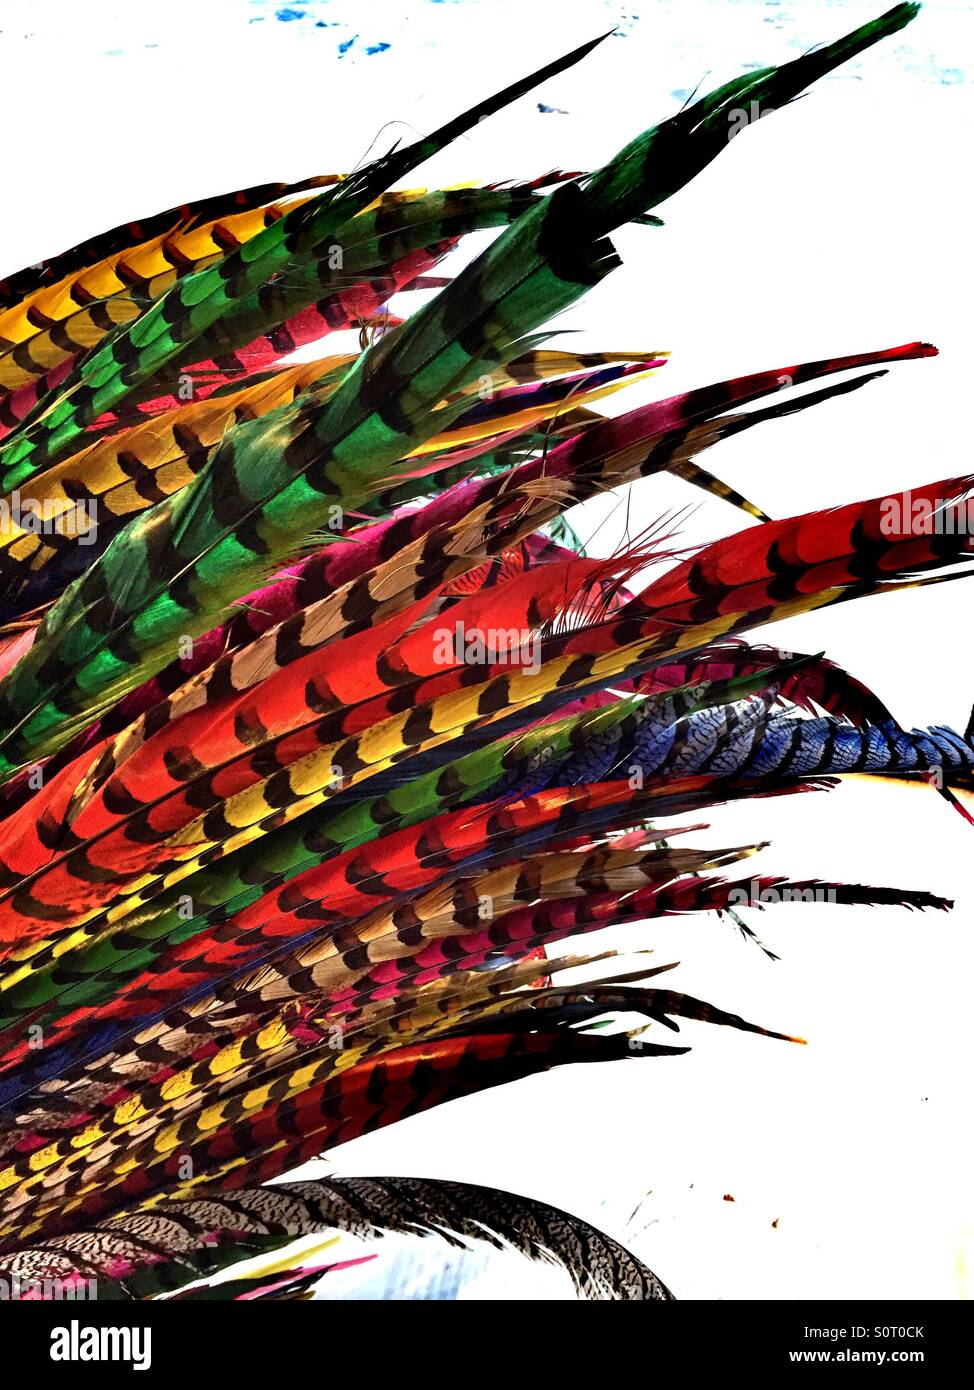 Detail of bunch of feathers of different colors. - Stock Image